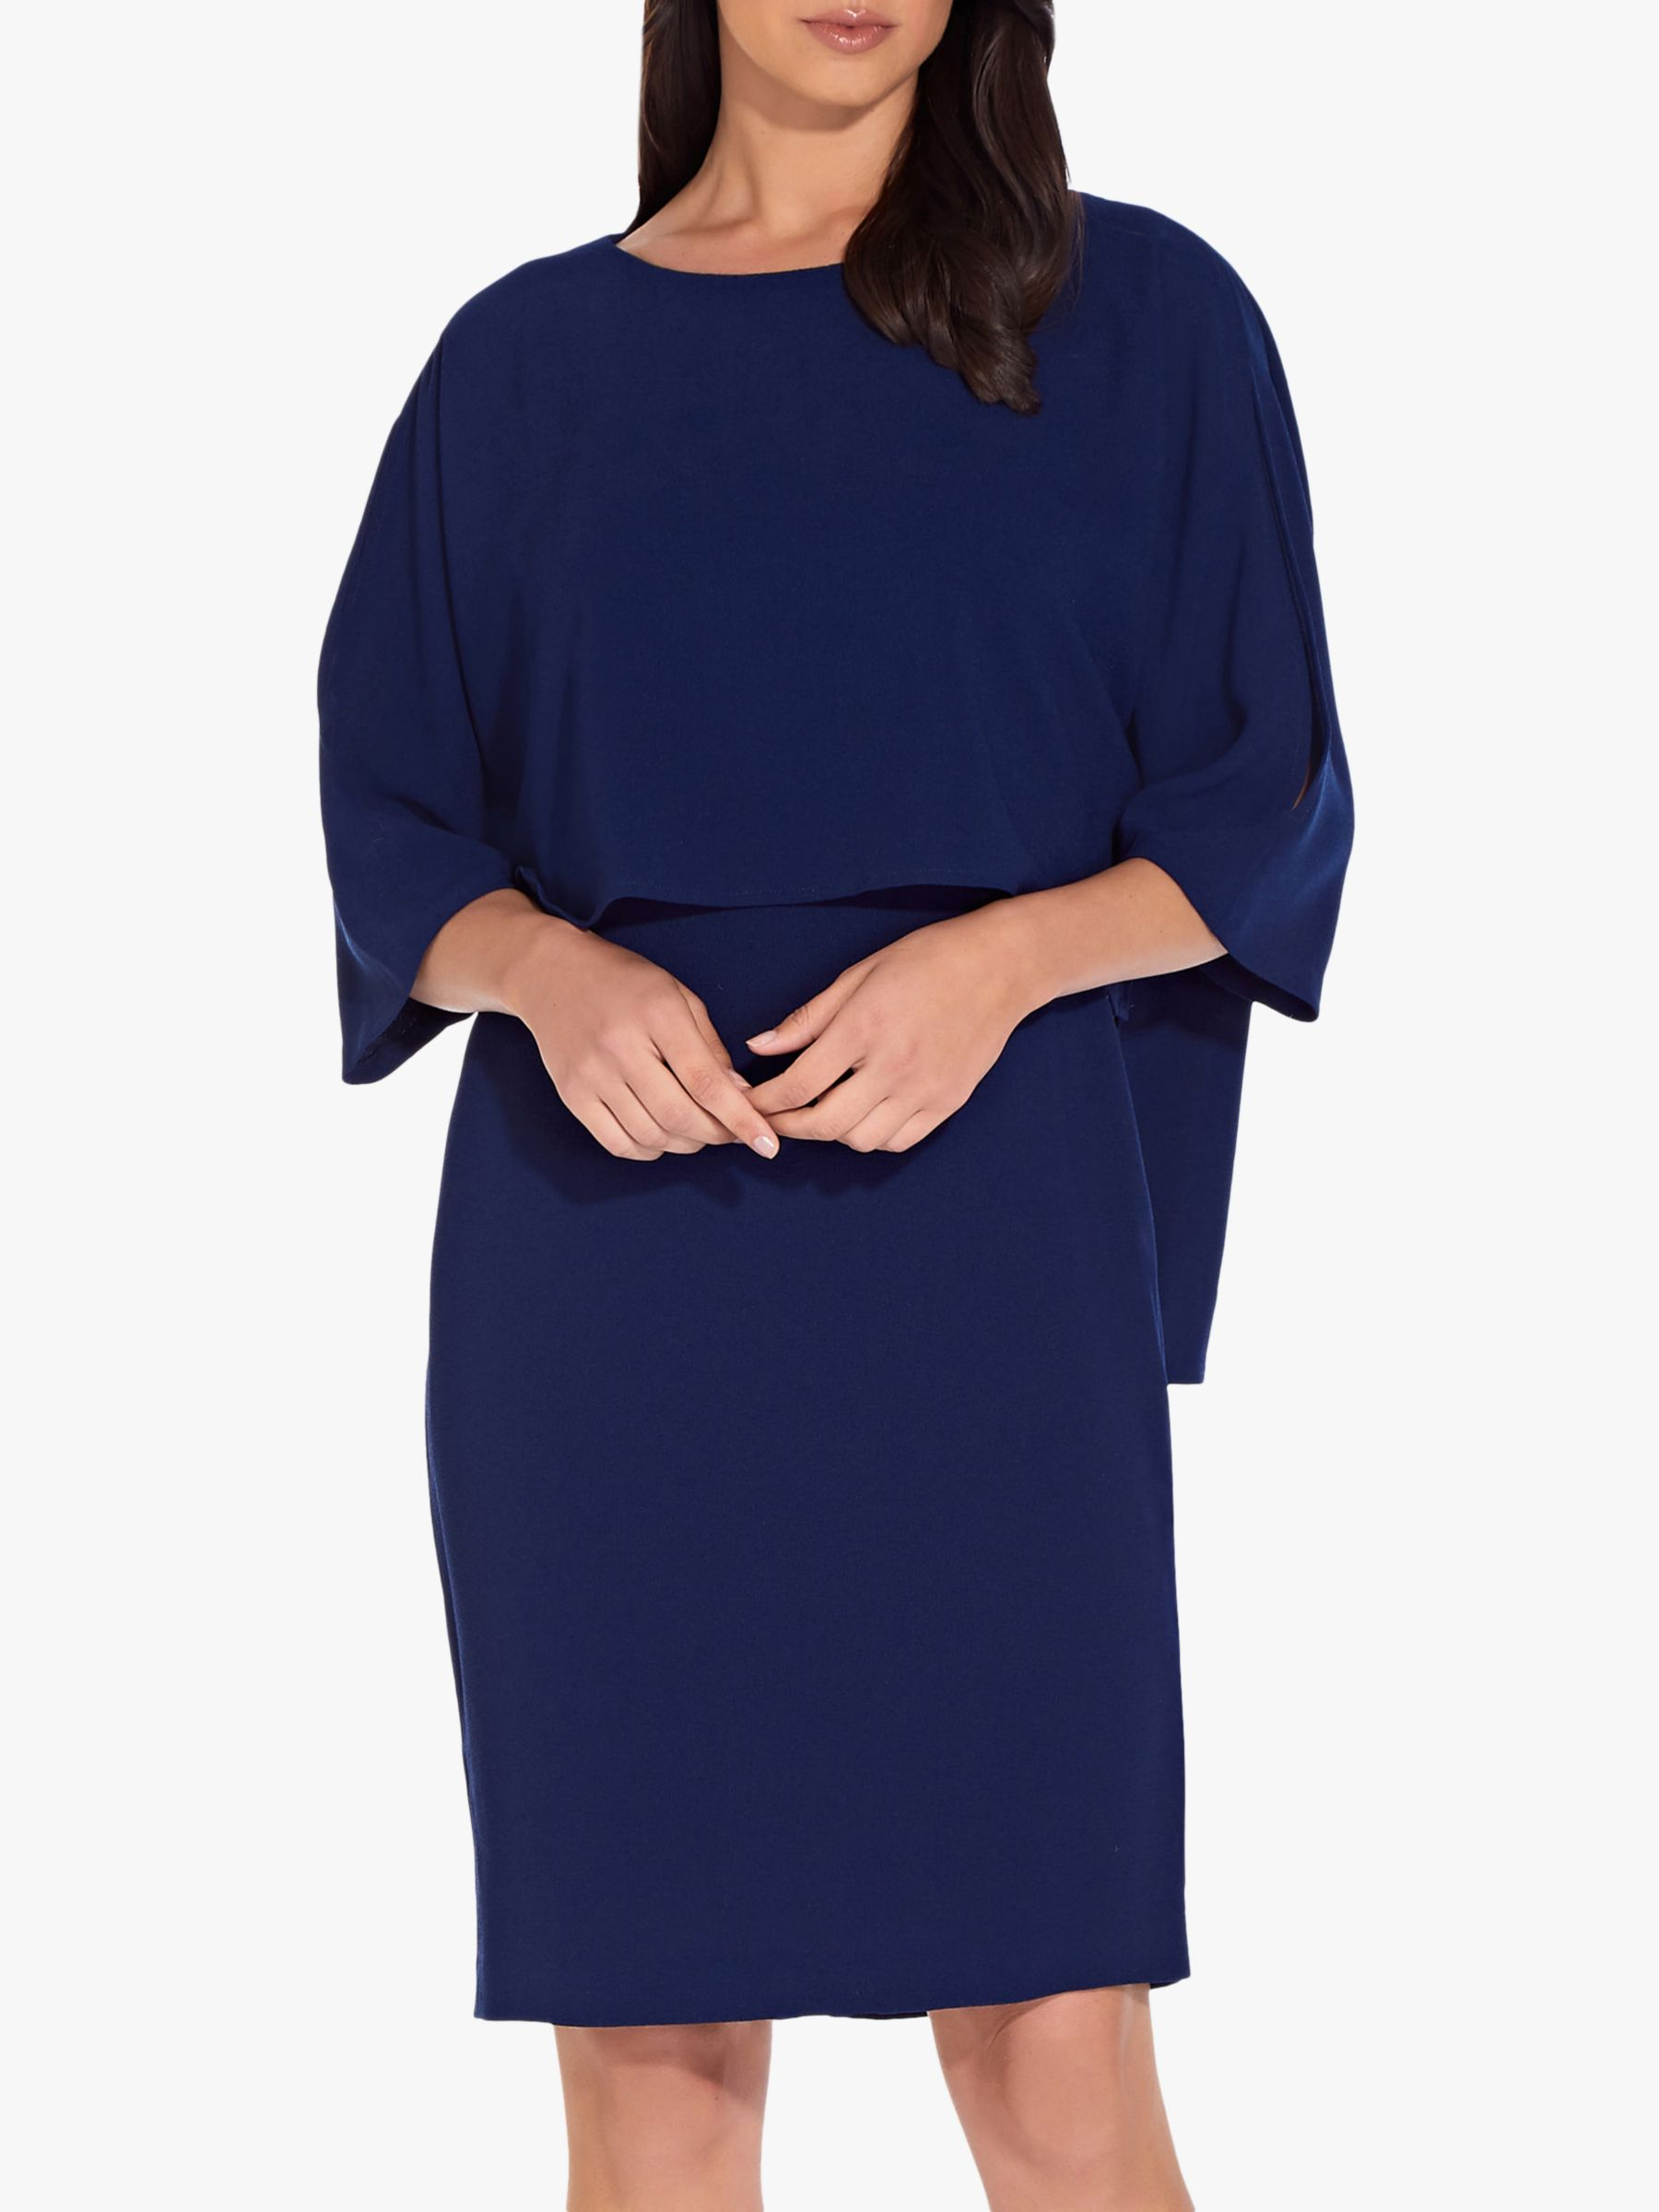 Adrianna Papell Adrianna Papell Textured Crepe Sheath Dress, Ink